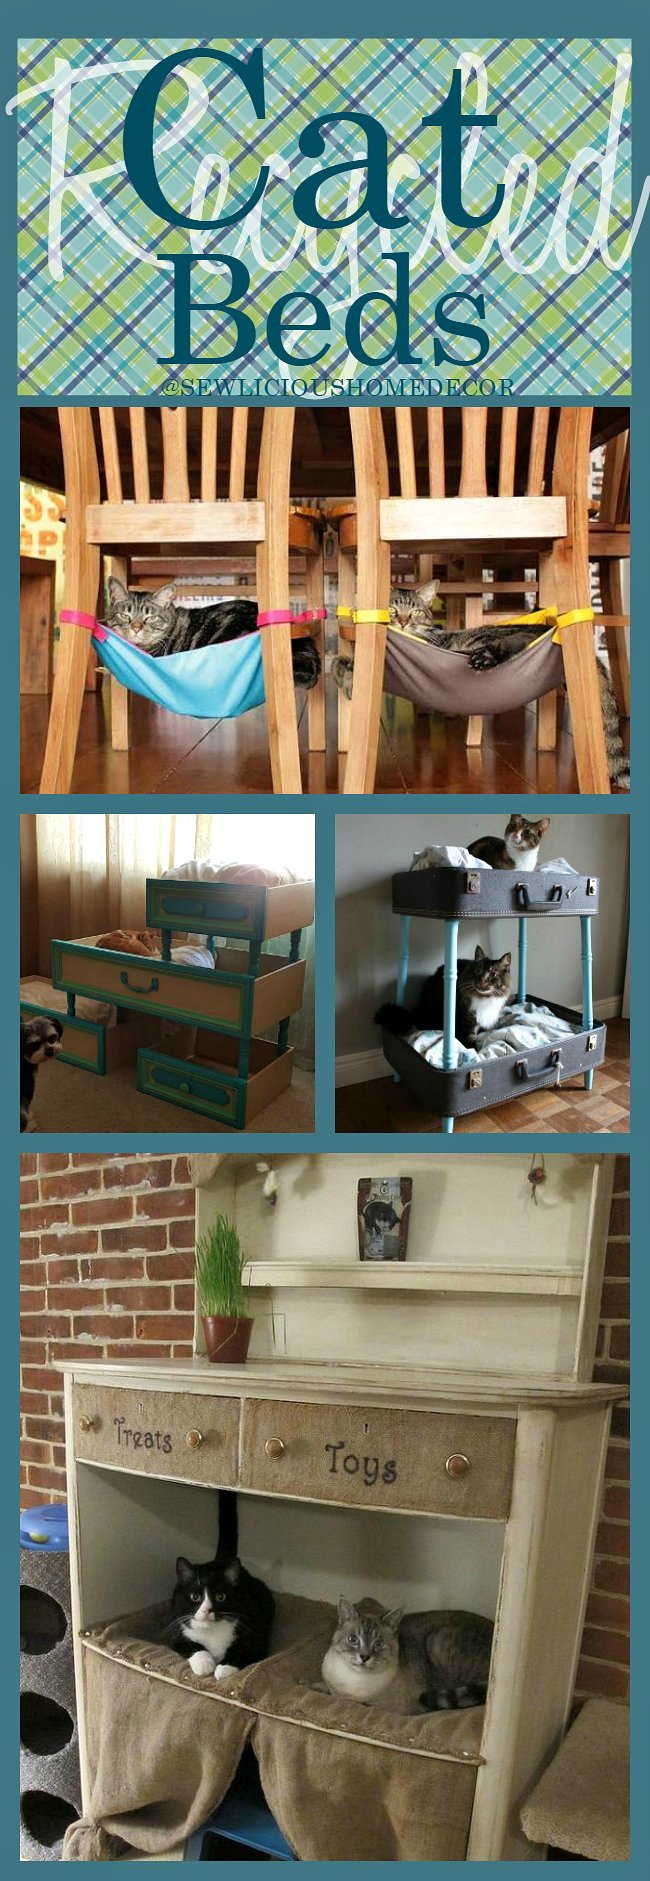 Recycled Cat Beds at sewlicioushomedecor.com